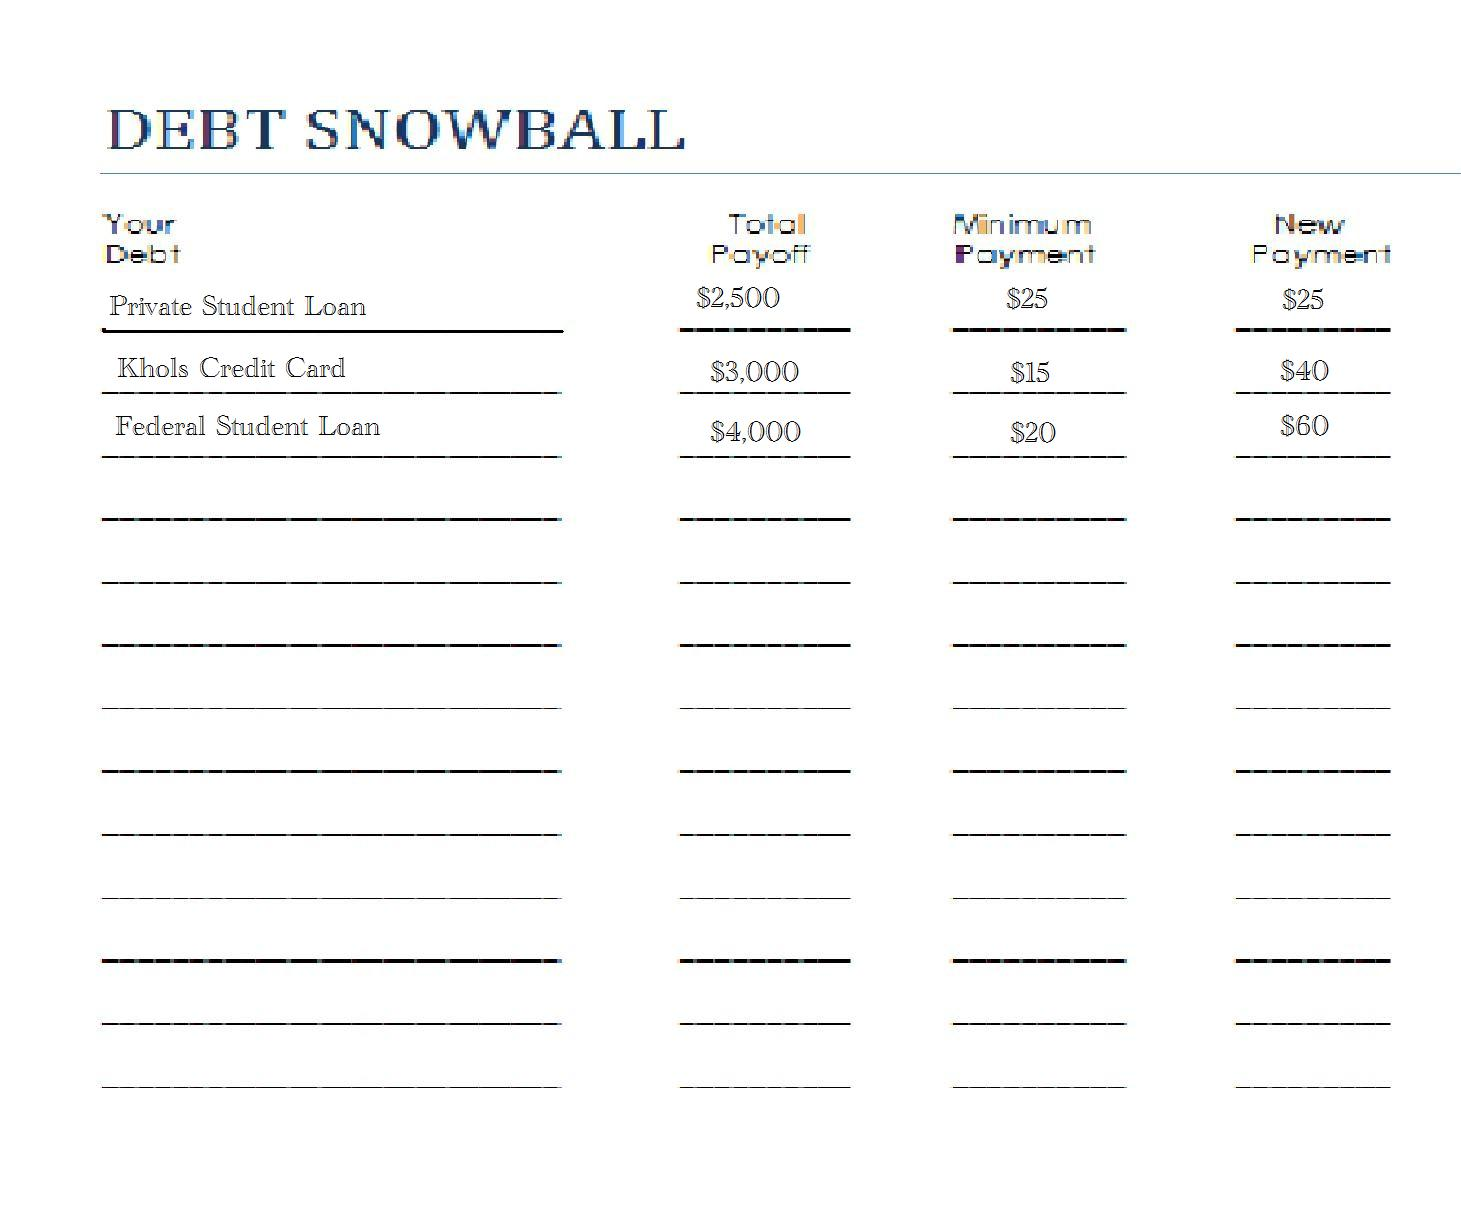 Free dave ramsey budget spreadsheet excel templates